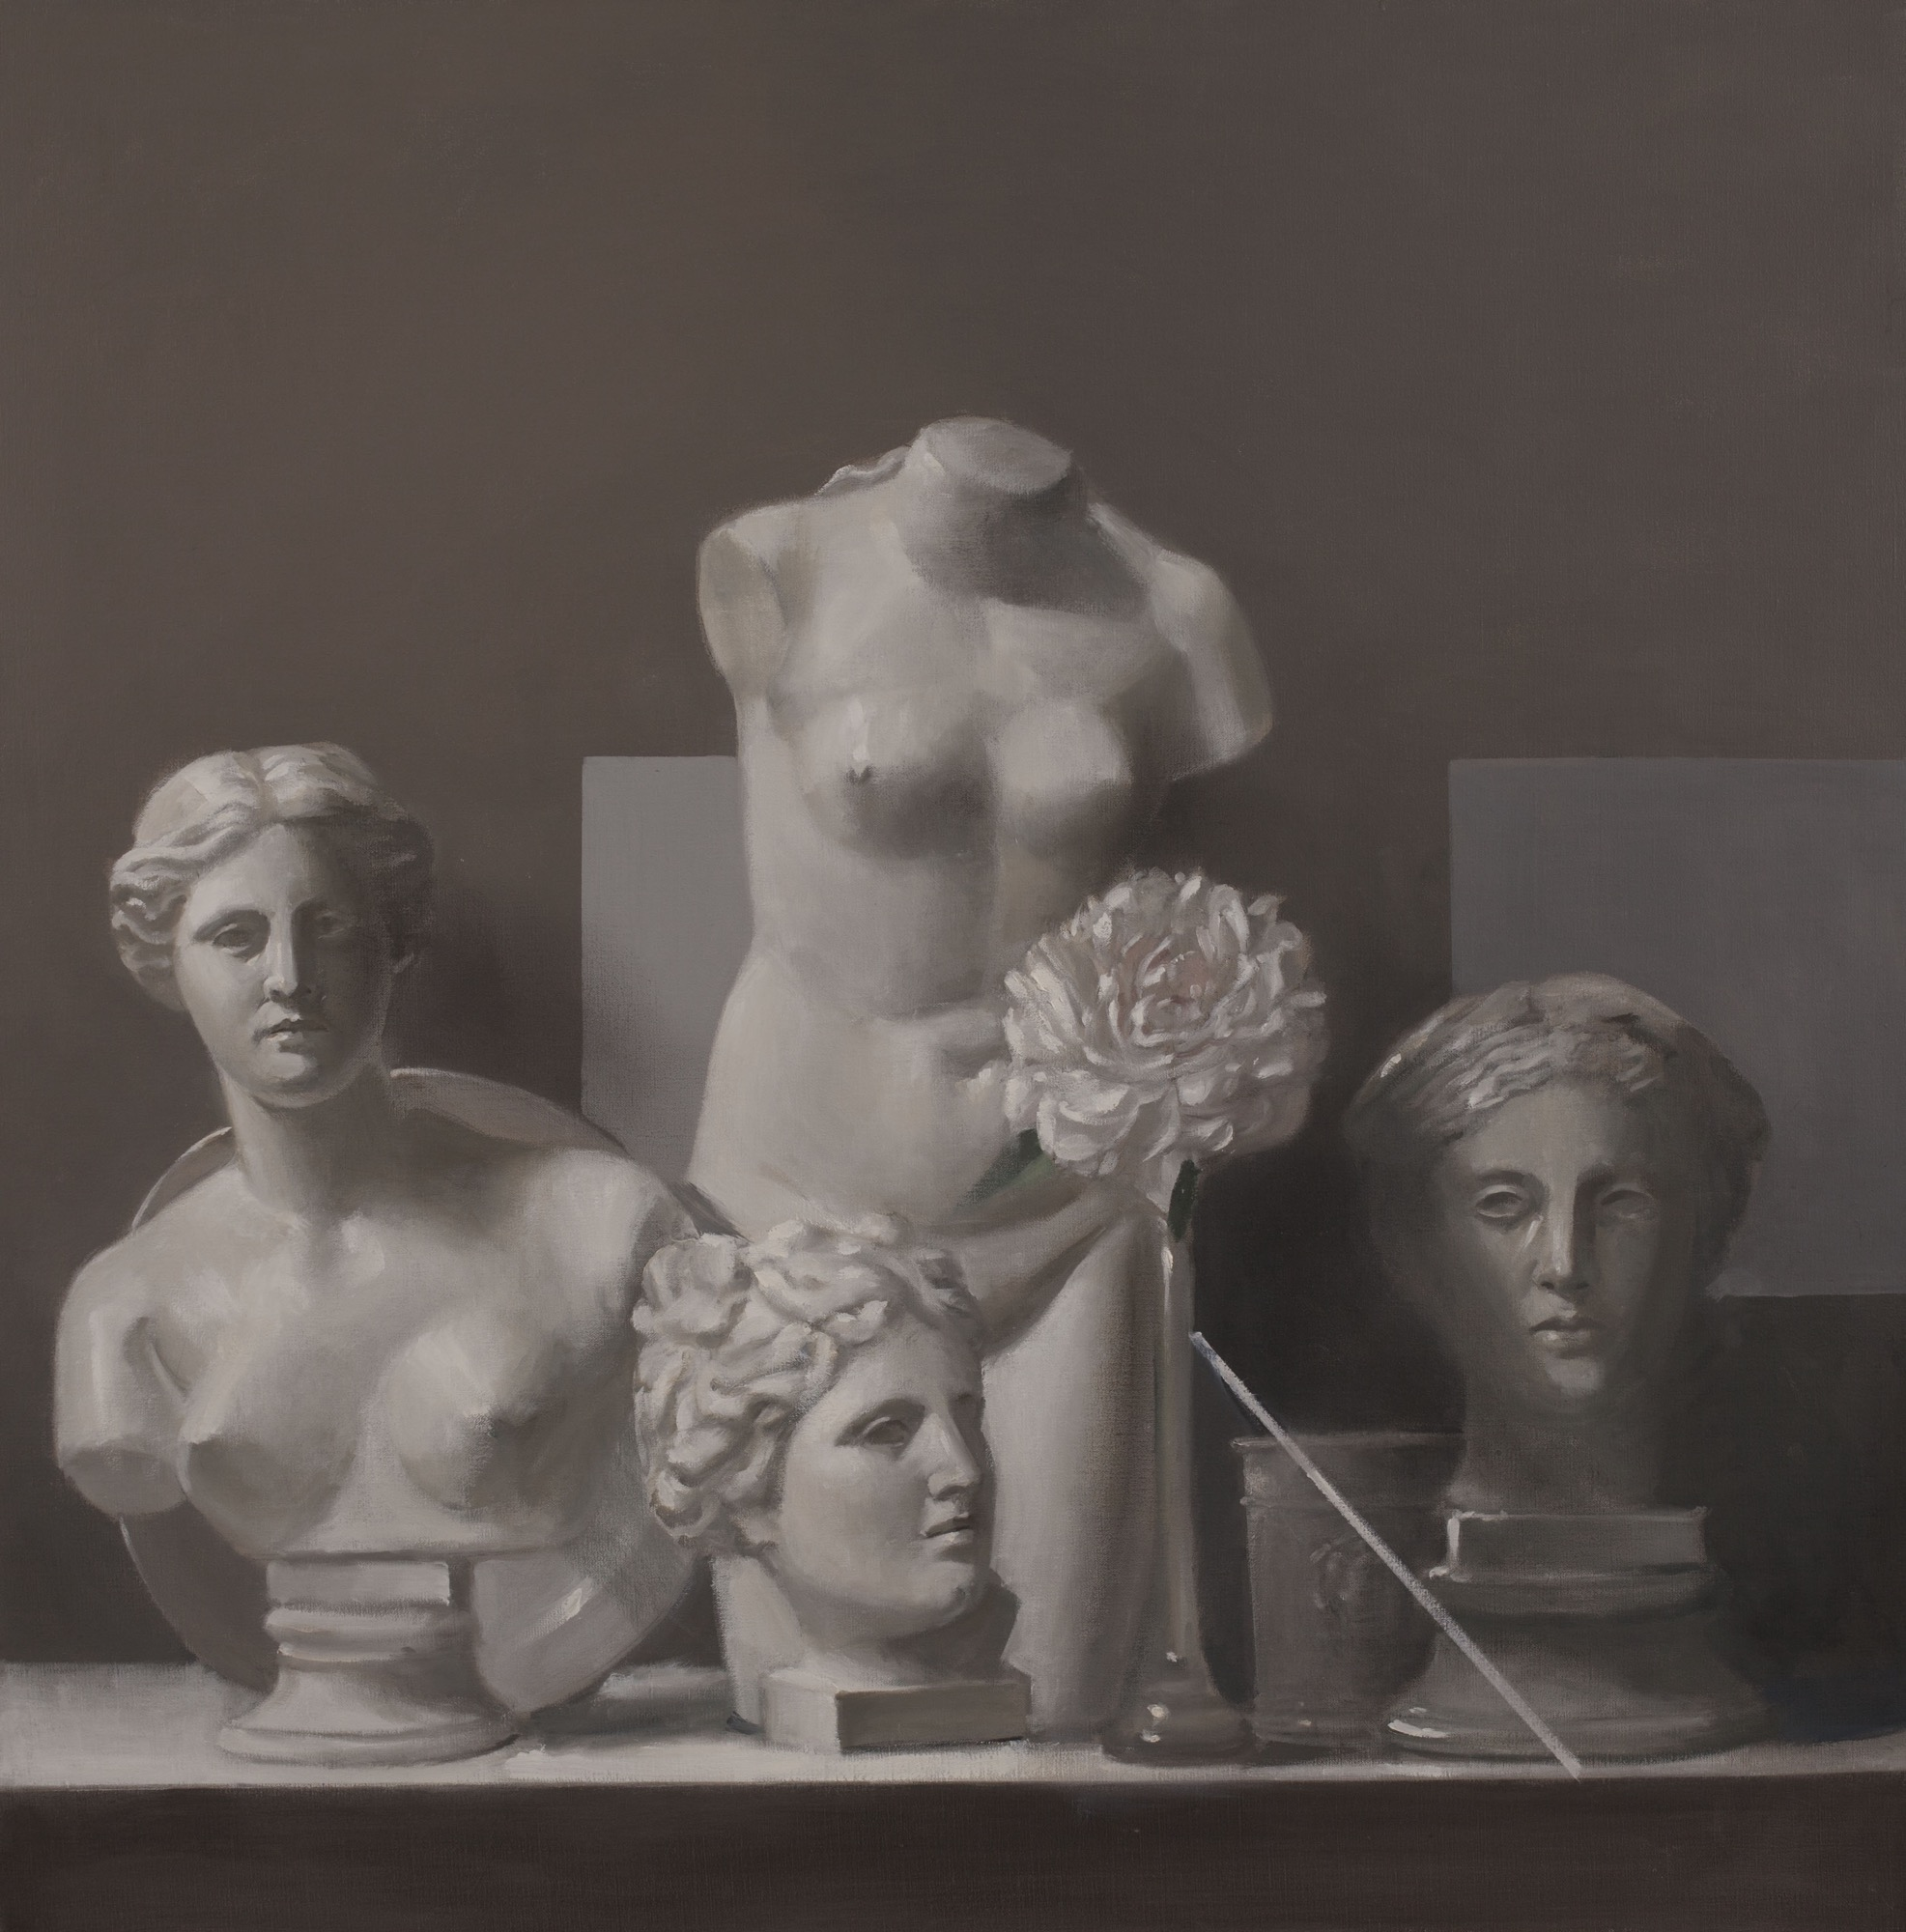 Raymond Han    Plaster Torso With Heads   Oil on linen  40 x 40 inches  101.6 x 101.6 cm